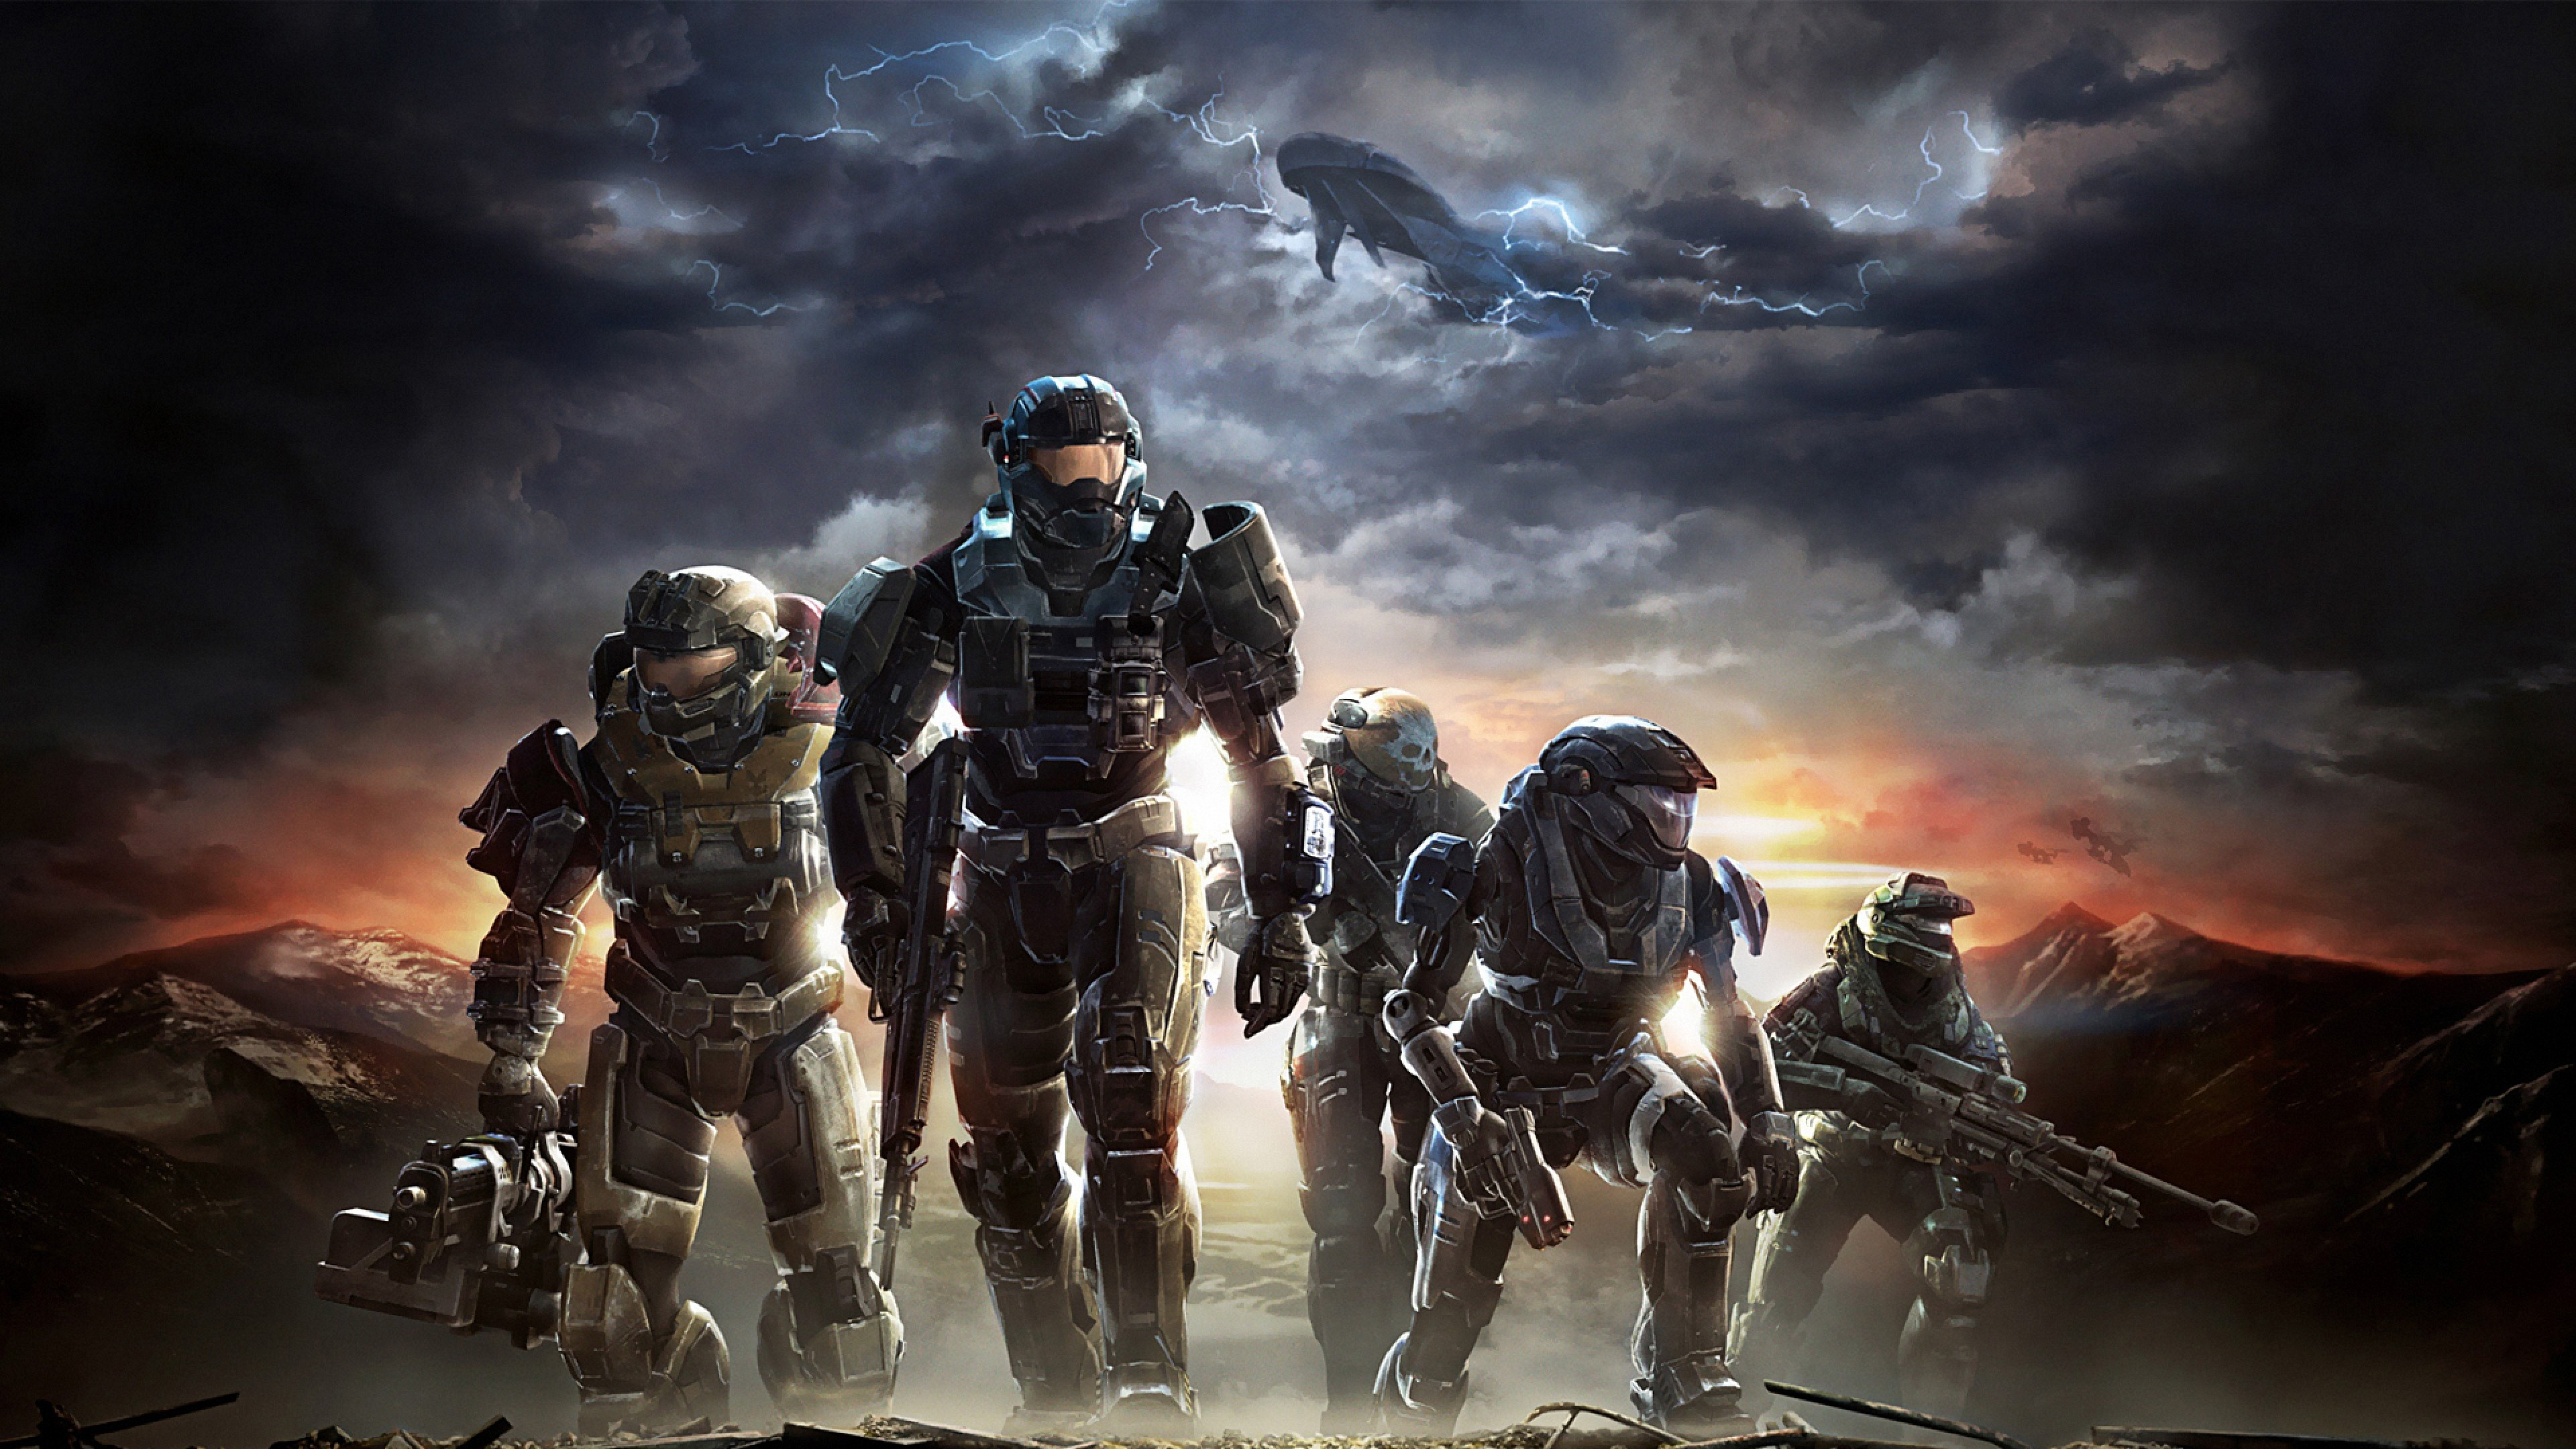 3840x2160 Download Wallpaper  halo, soldiers, sky, clouds, mountains 4K .